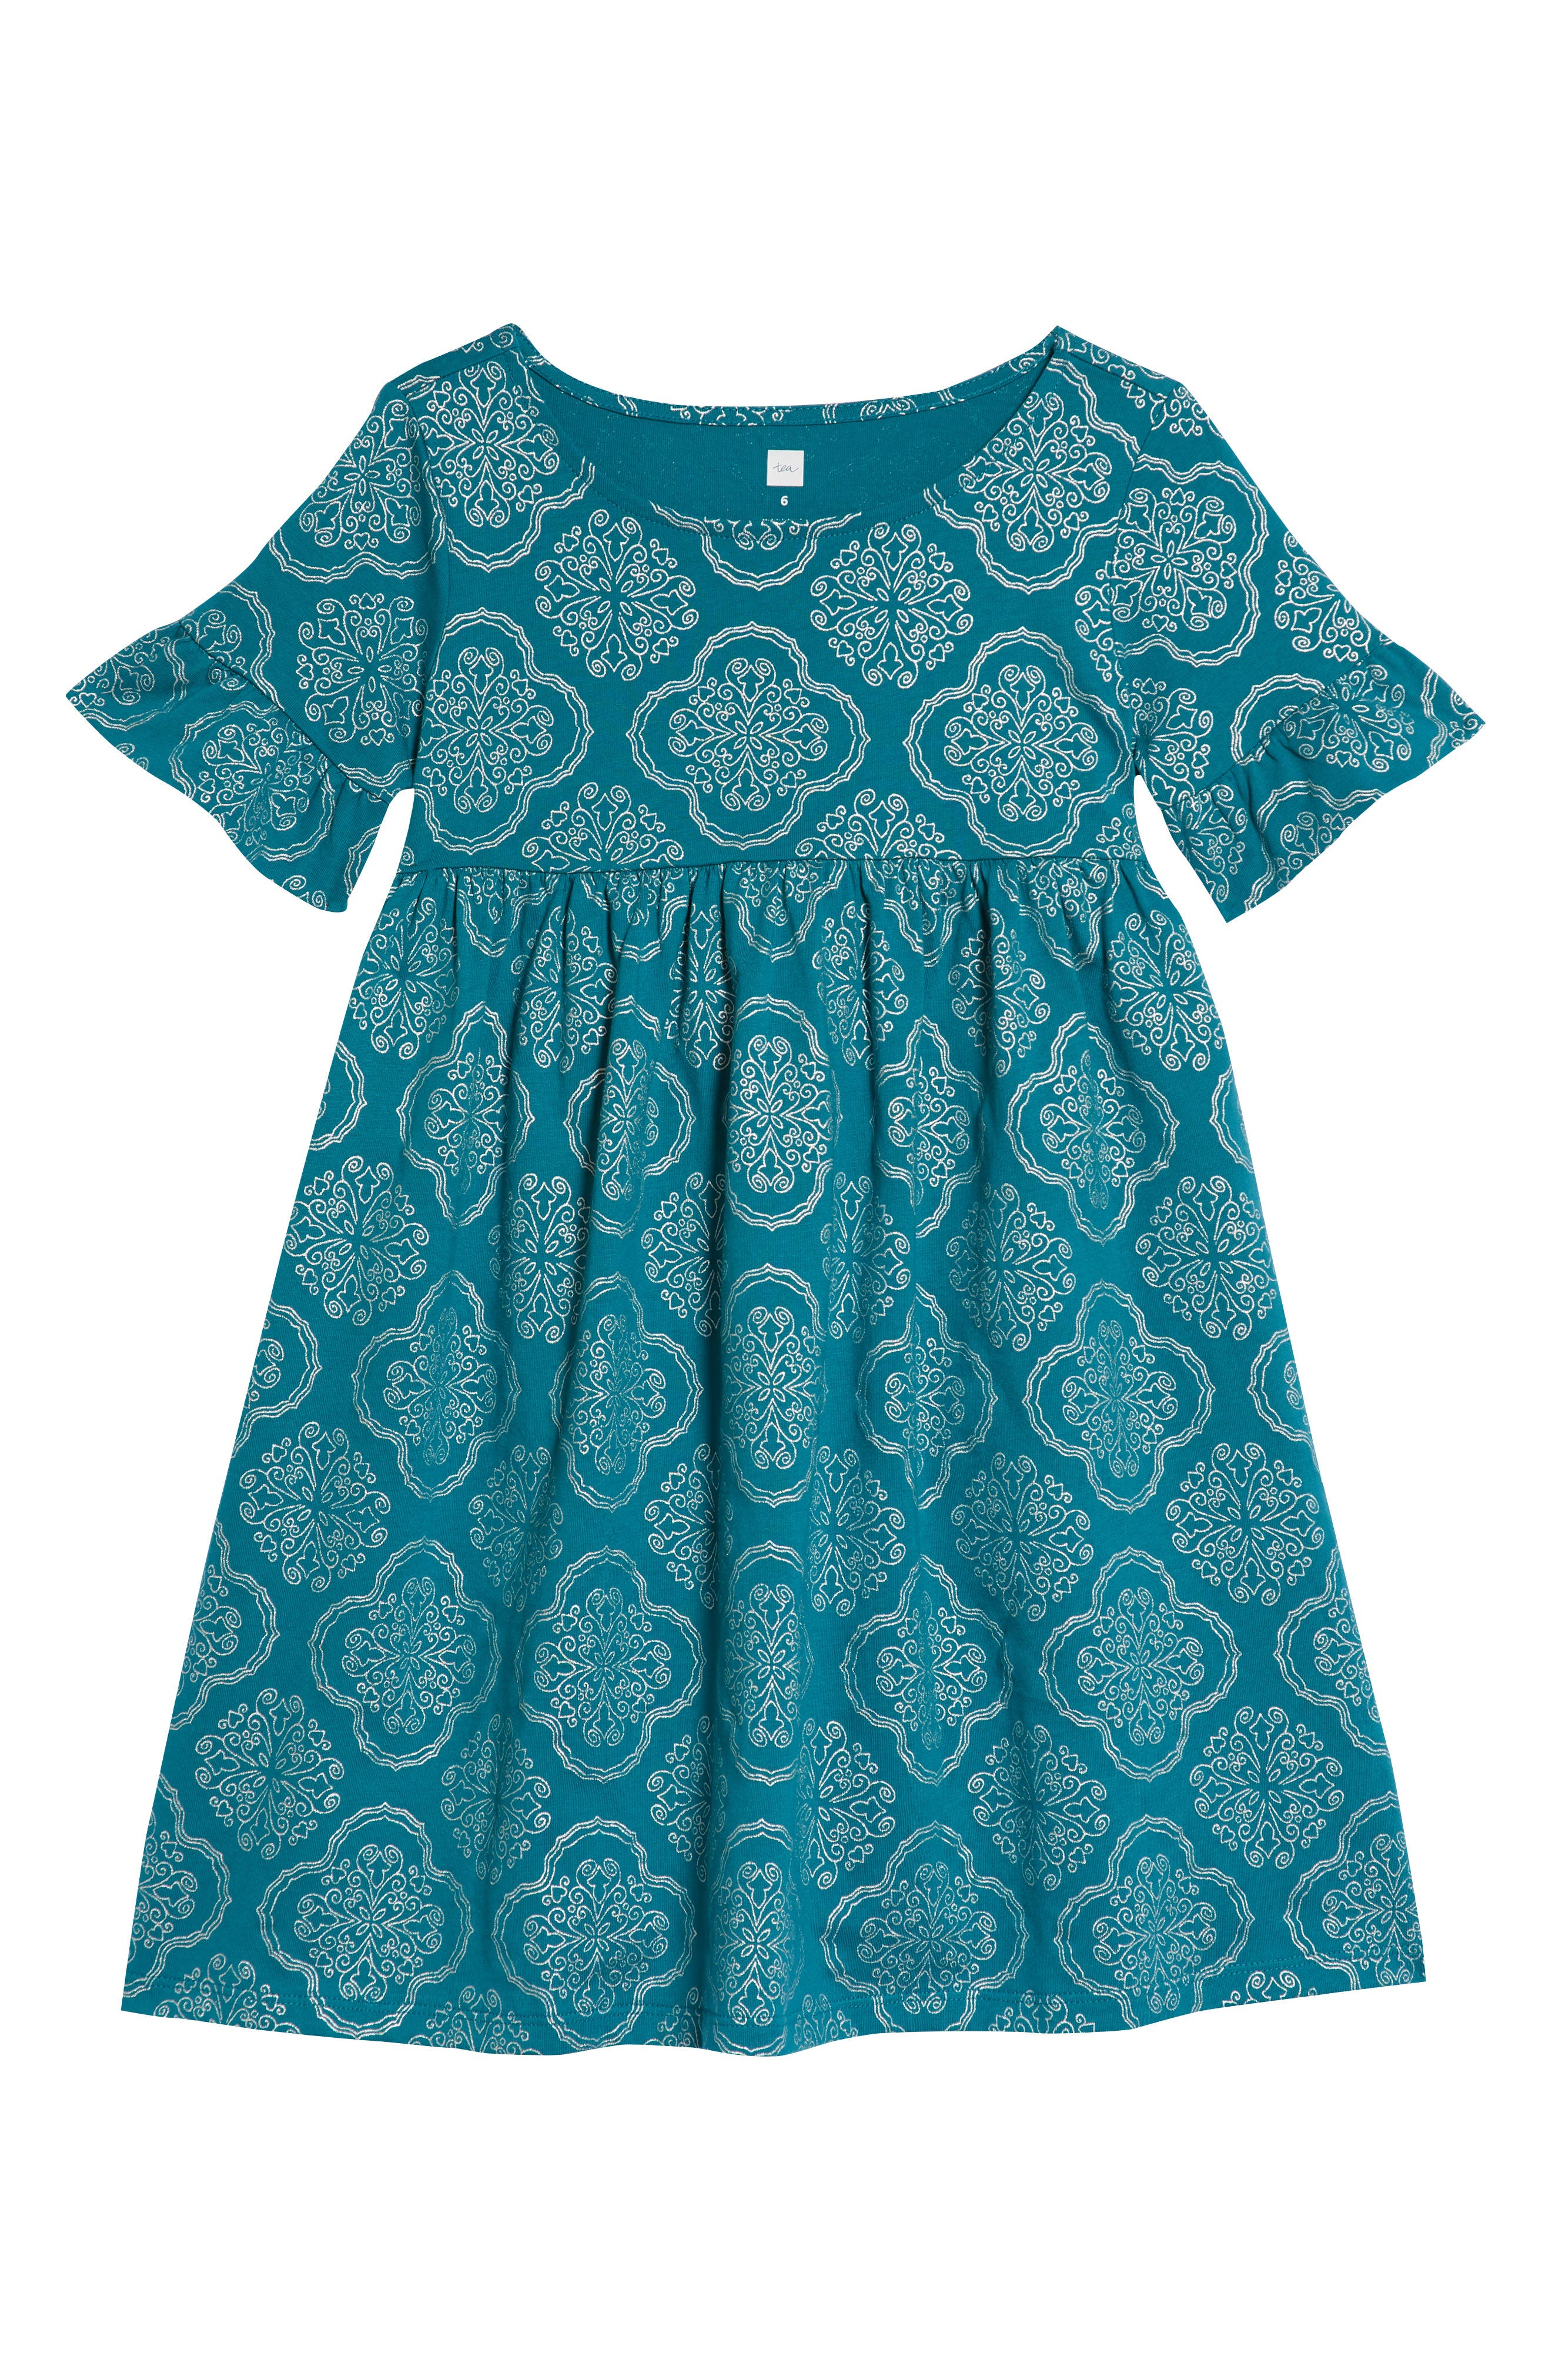 Alternate Image 1 Selected - Tea Collection Ruffle Sleeve Dress (Toddler Girls, Little Girls & Big Girls)